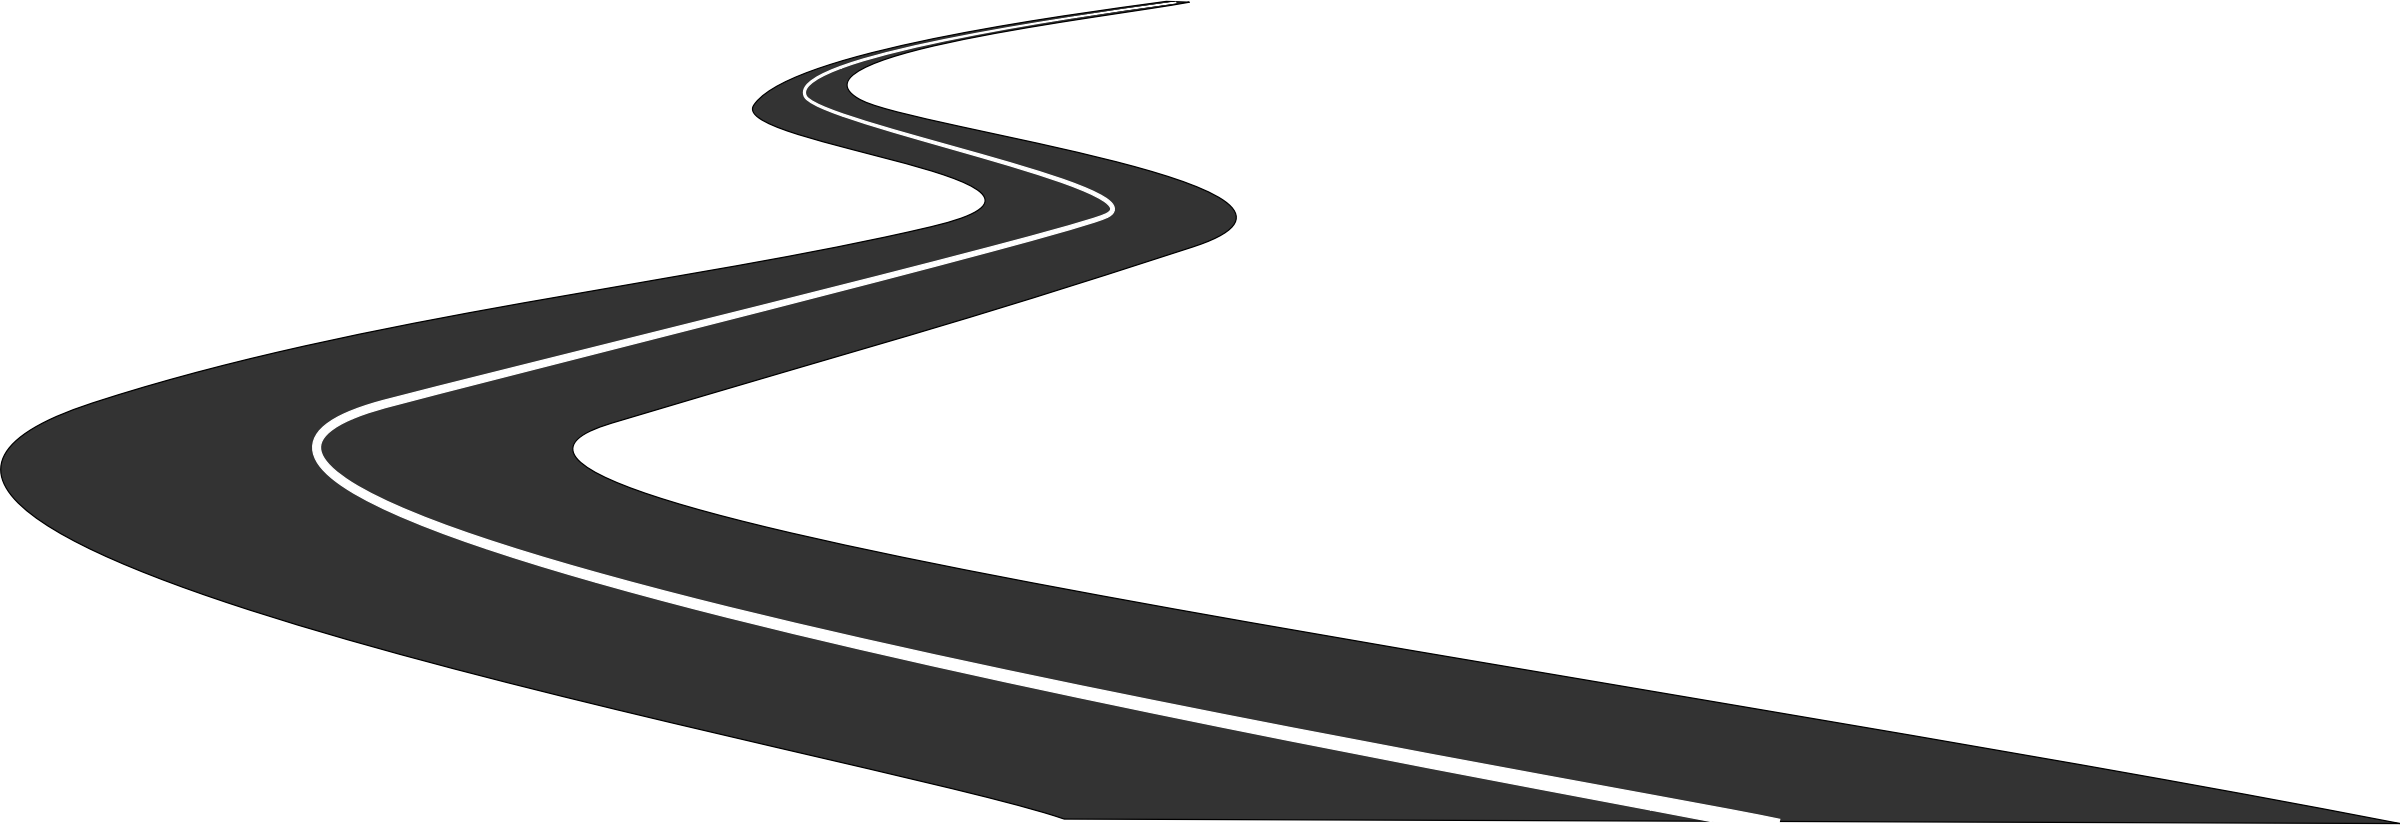 Drawn roadway doodle Straight Art Clipart Download Free